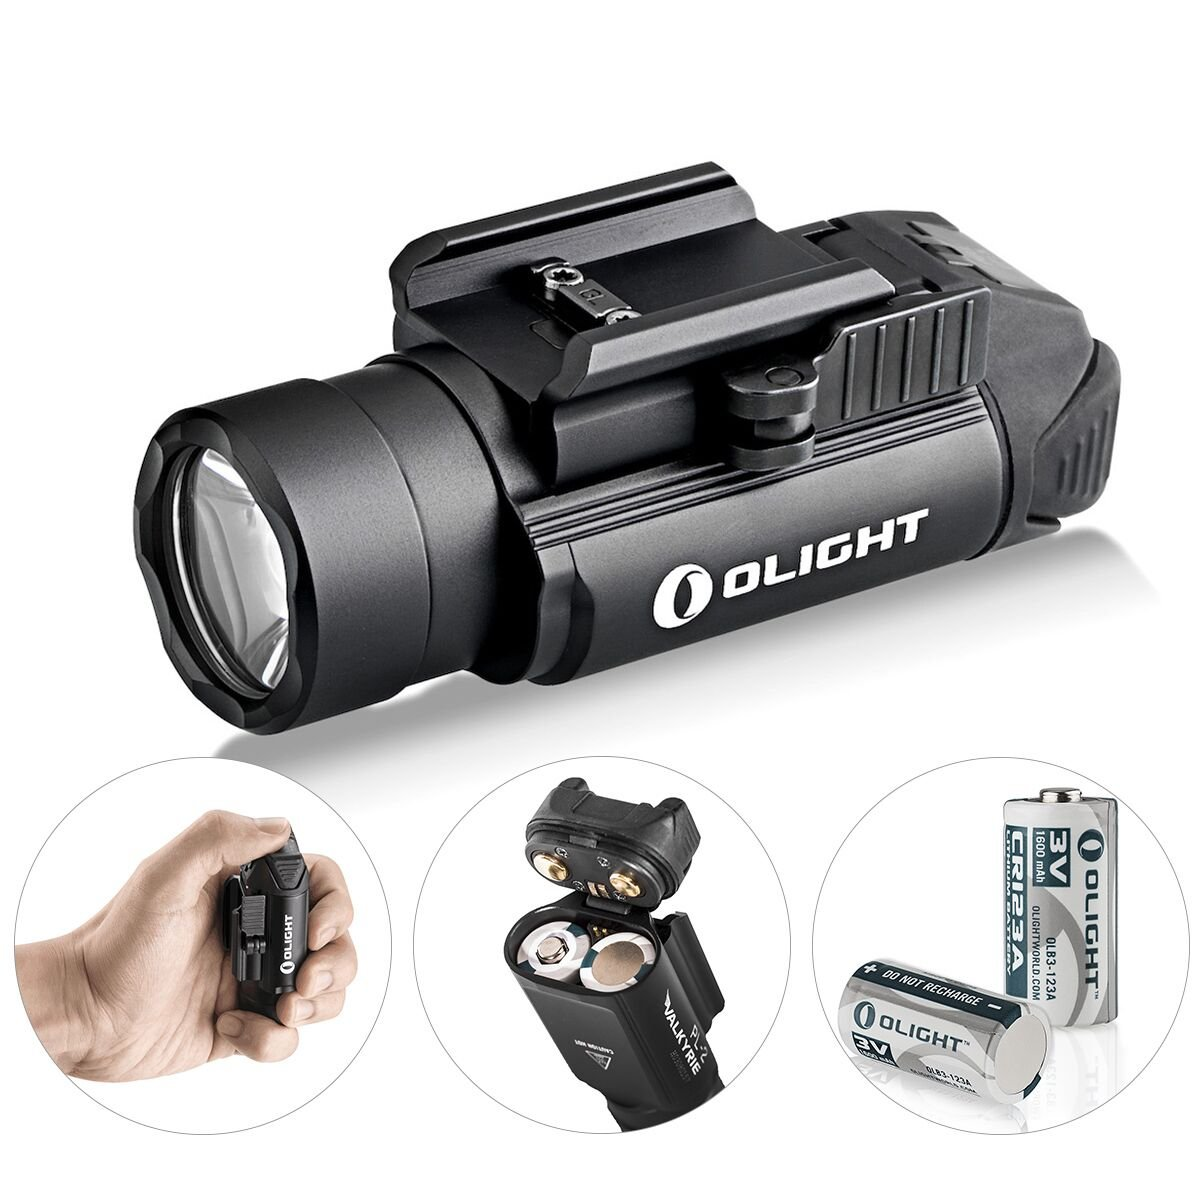 OLIGHT Bundle PL-2,PL2, pl ii Valkyrie 1200 Lumen Rail Mounted Compact Pistol Light with 2 x cr123a Batteries weaponlight Flashlight Patch by OLIGHT